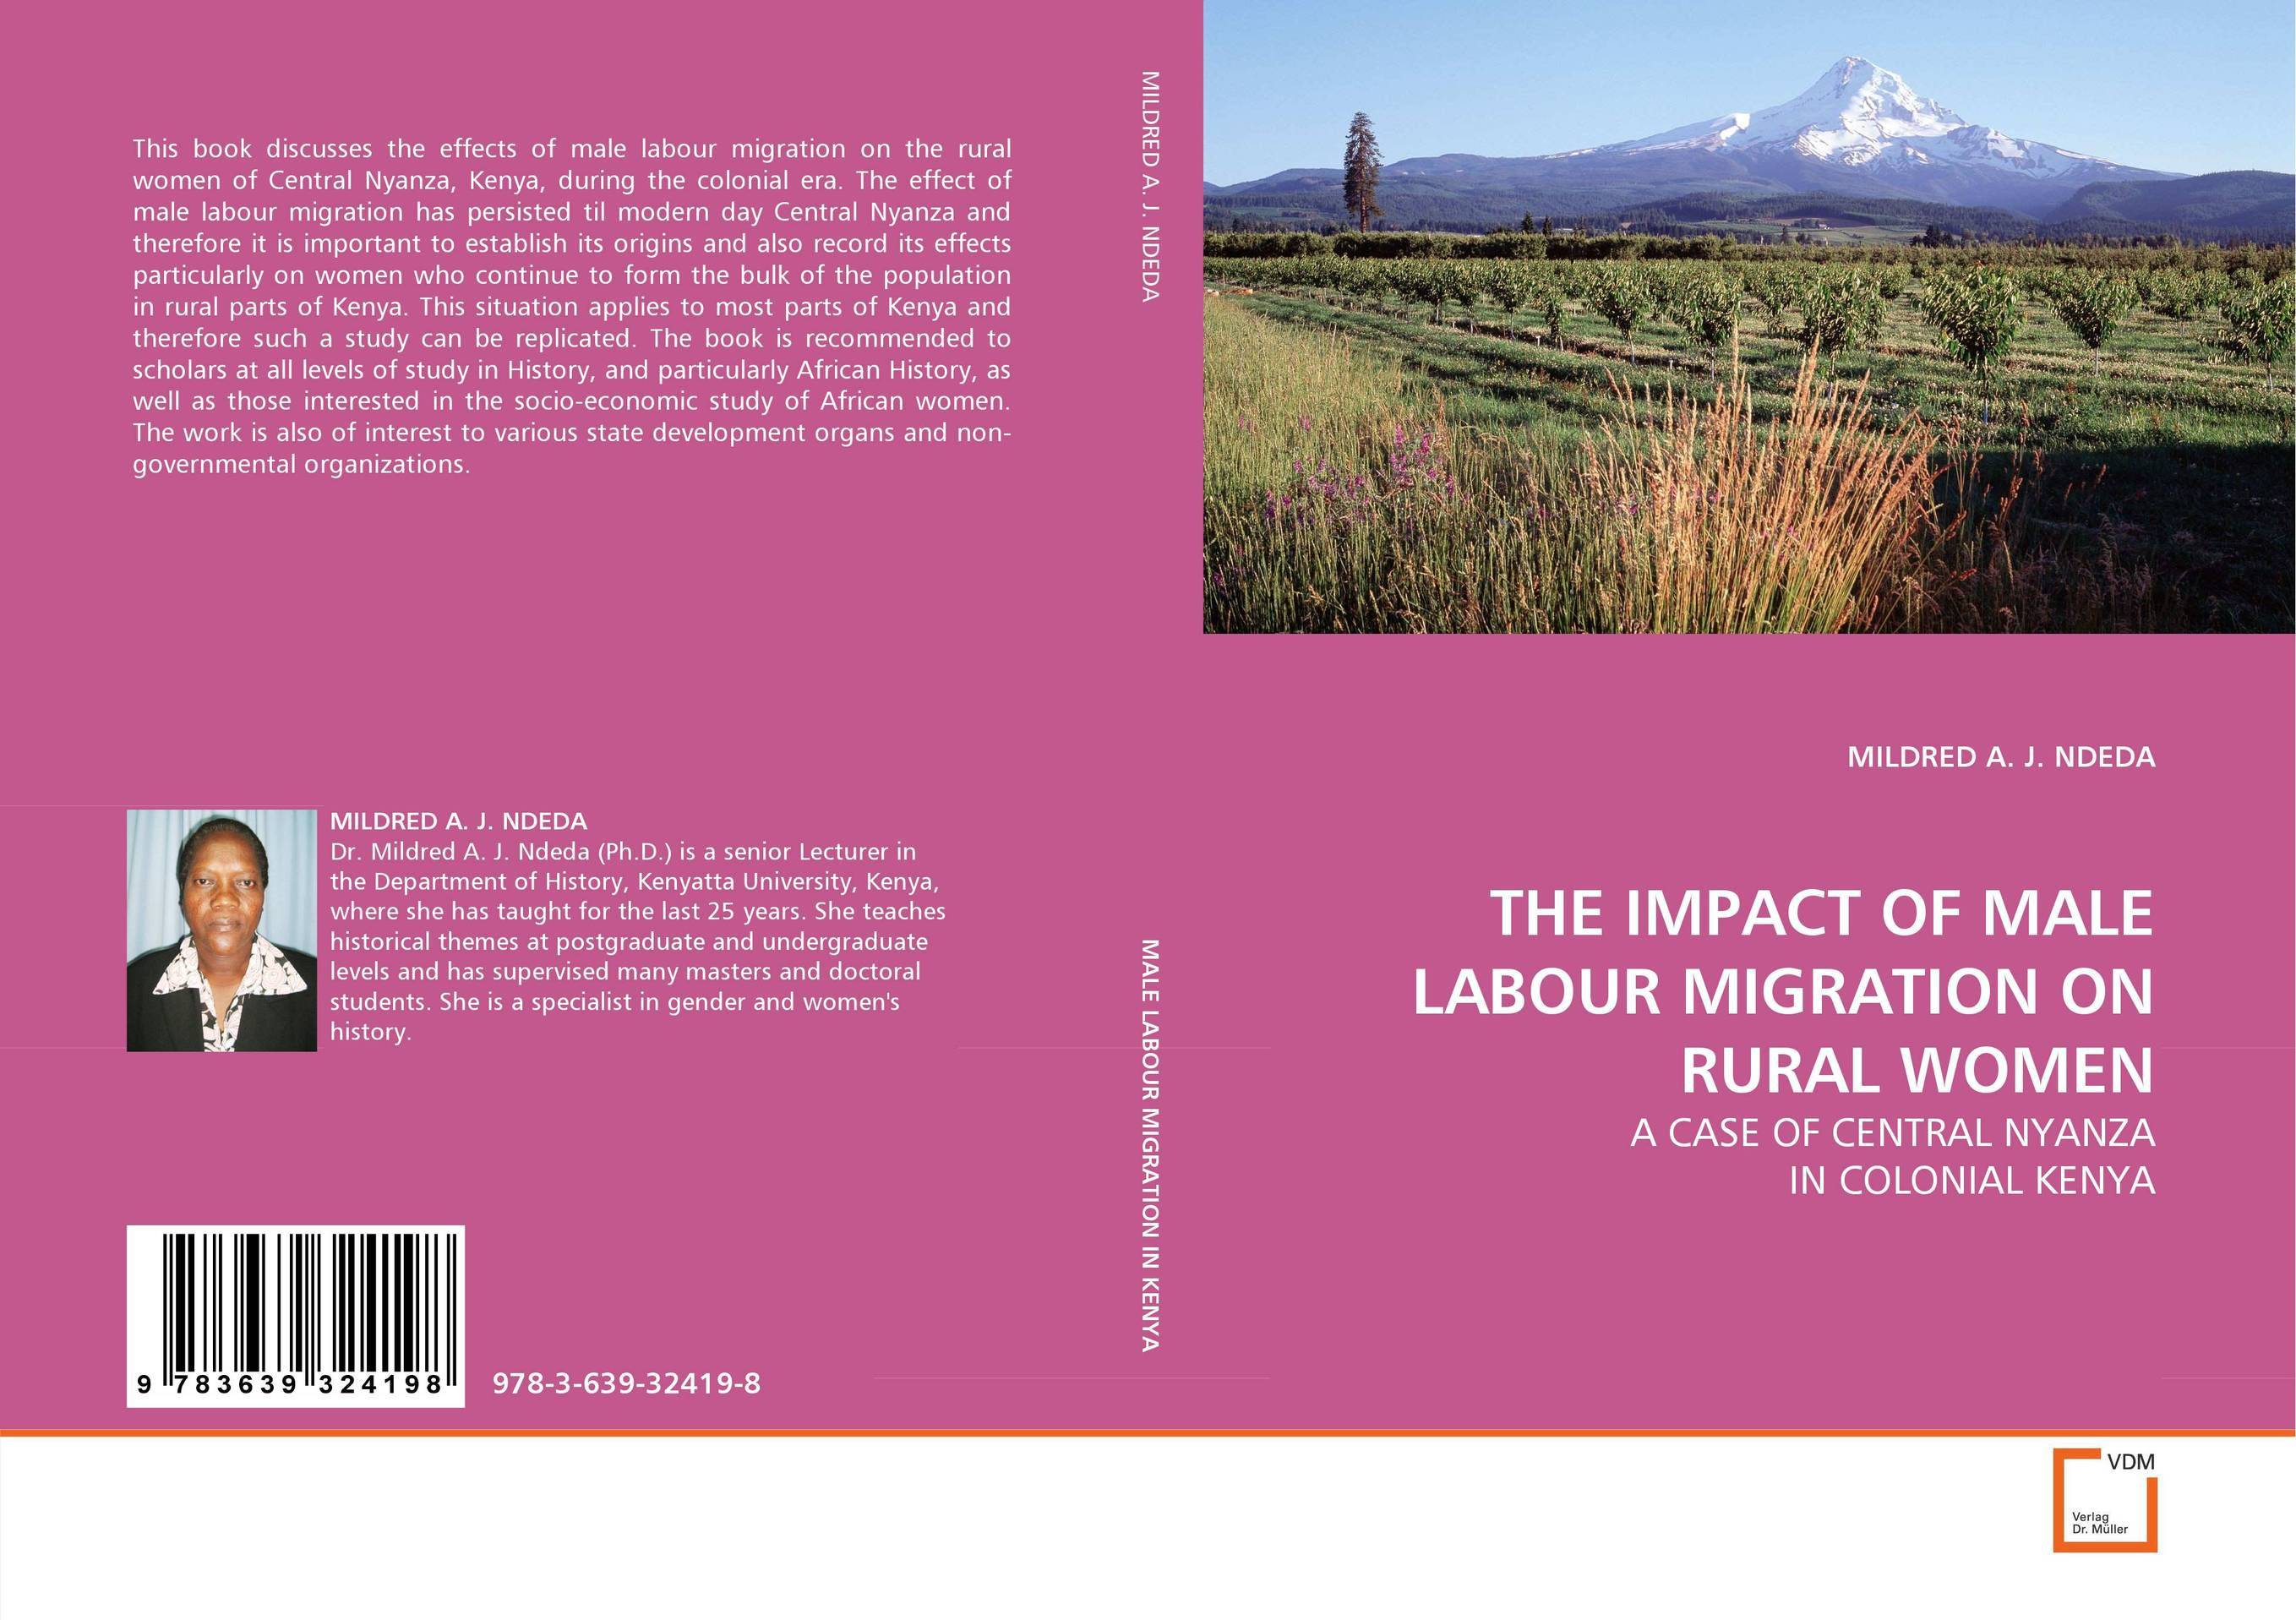 THE IMPACT OF MALE LABOUR MIGRATION ON RURAL WOMEN the impact of labour unionism on the christian society